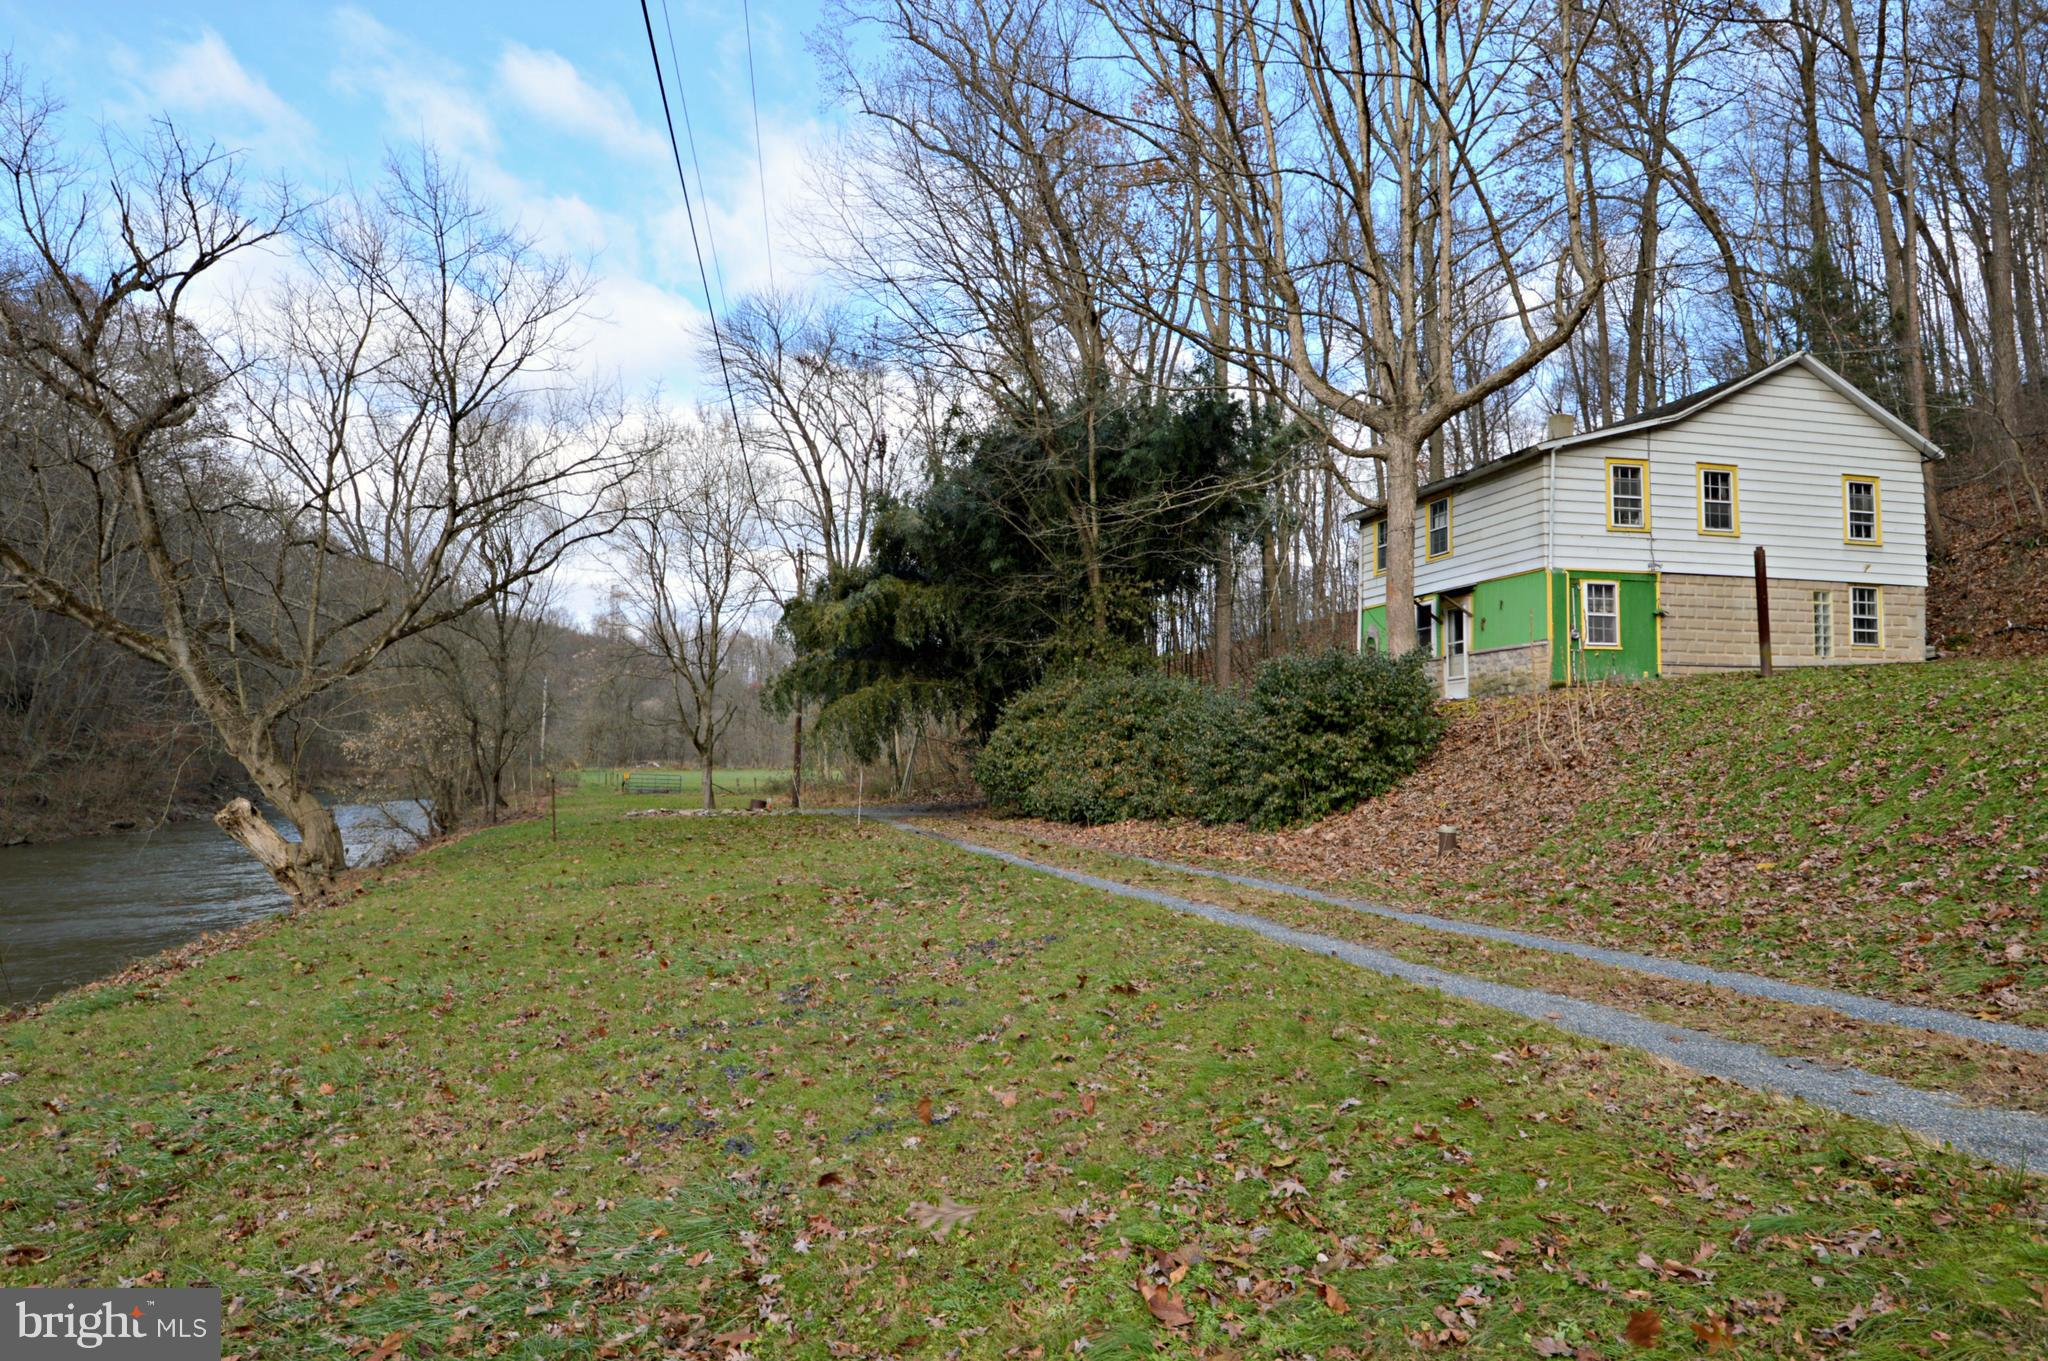 123 HORSE HOLLOW ROAD, PEQUEA, PA 17565